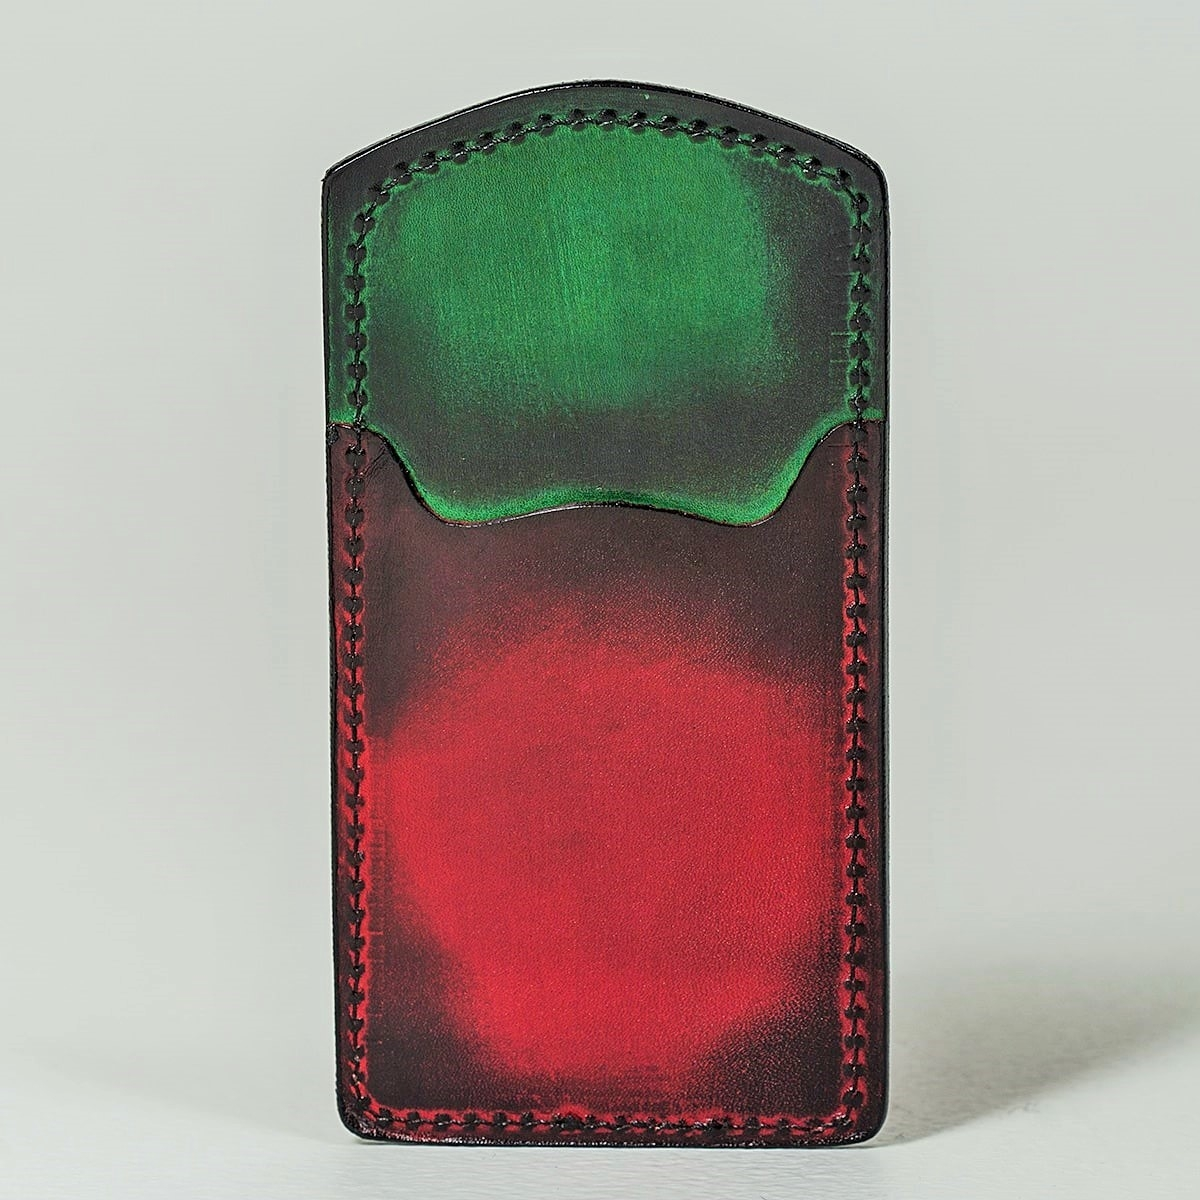 Cardholder TOWER red currant & grassy green